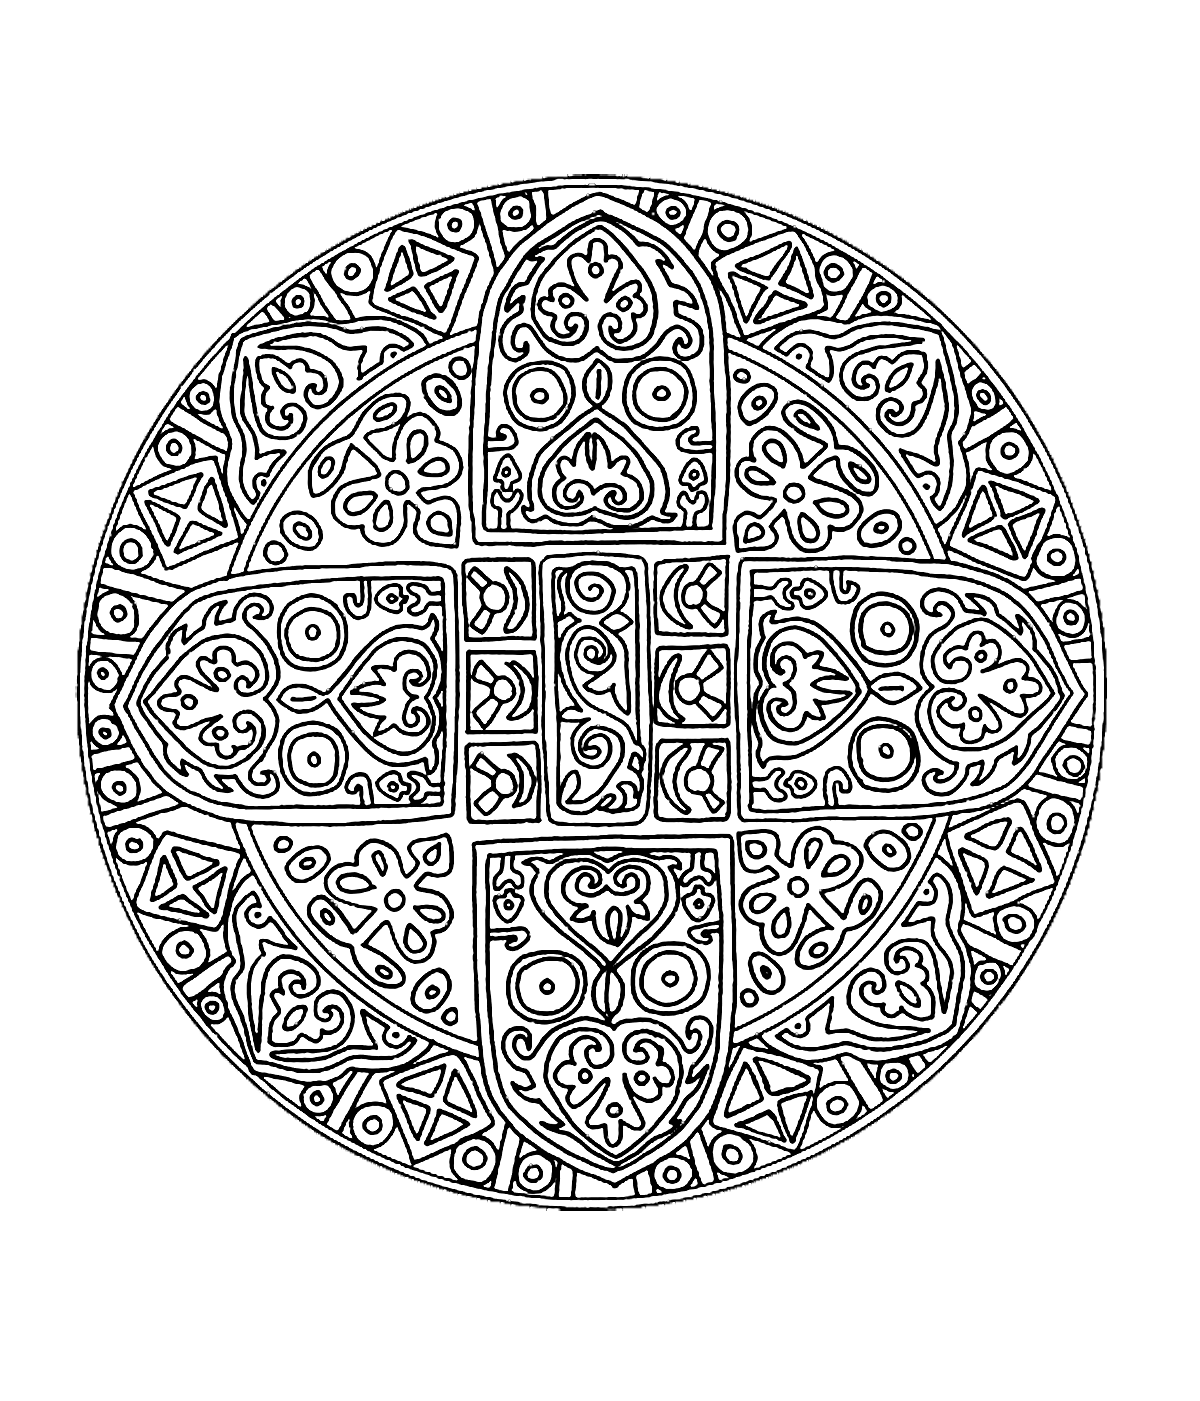 mandala coloring pages for adults free mandala for to print 1 malas adult coloring adults mandala for pages coloring